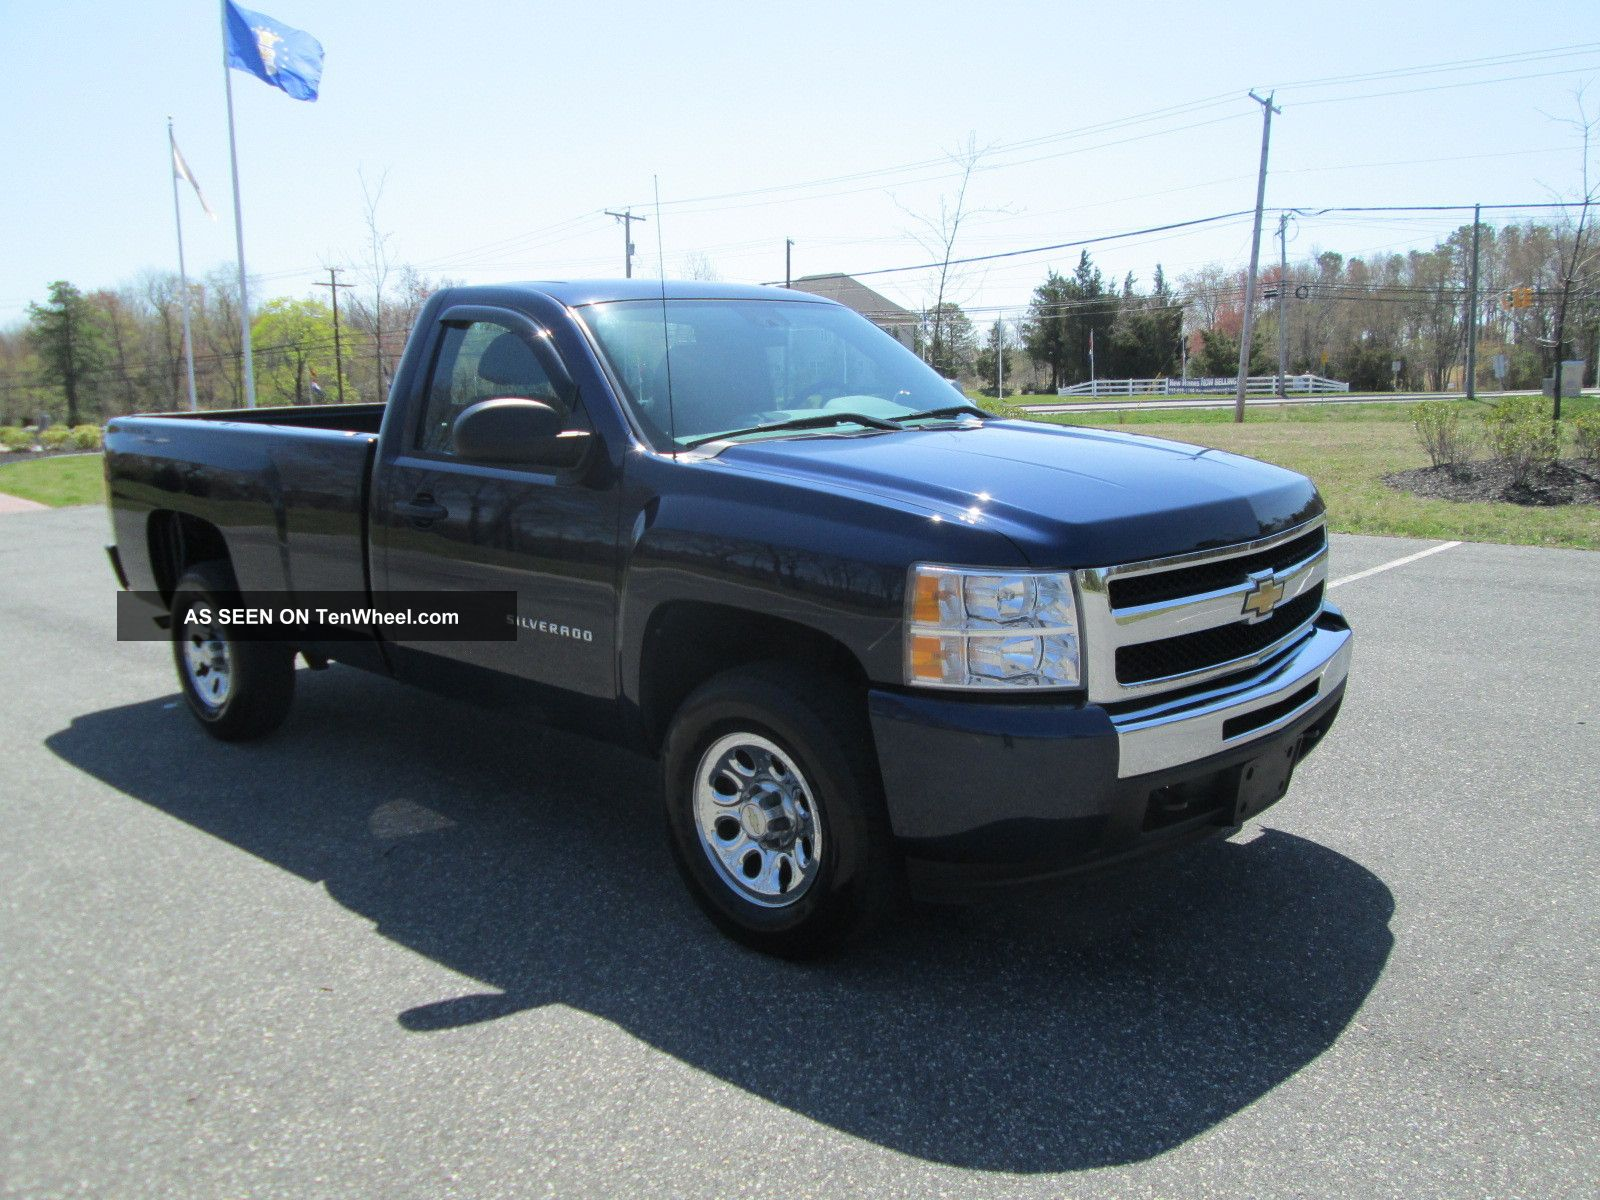 2011 chevrolet silverado 1500 wt standard cab pickup 2 door 4 8l. Black Bedroom Furniture Sets. Home Design Ideas